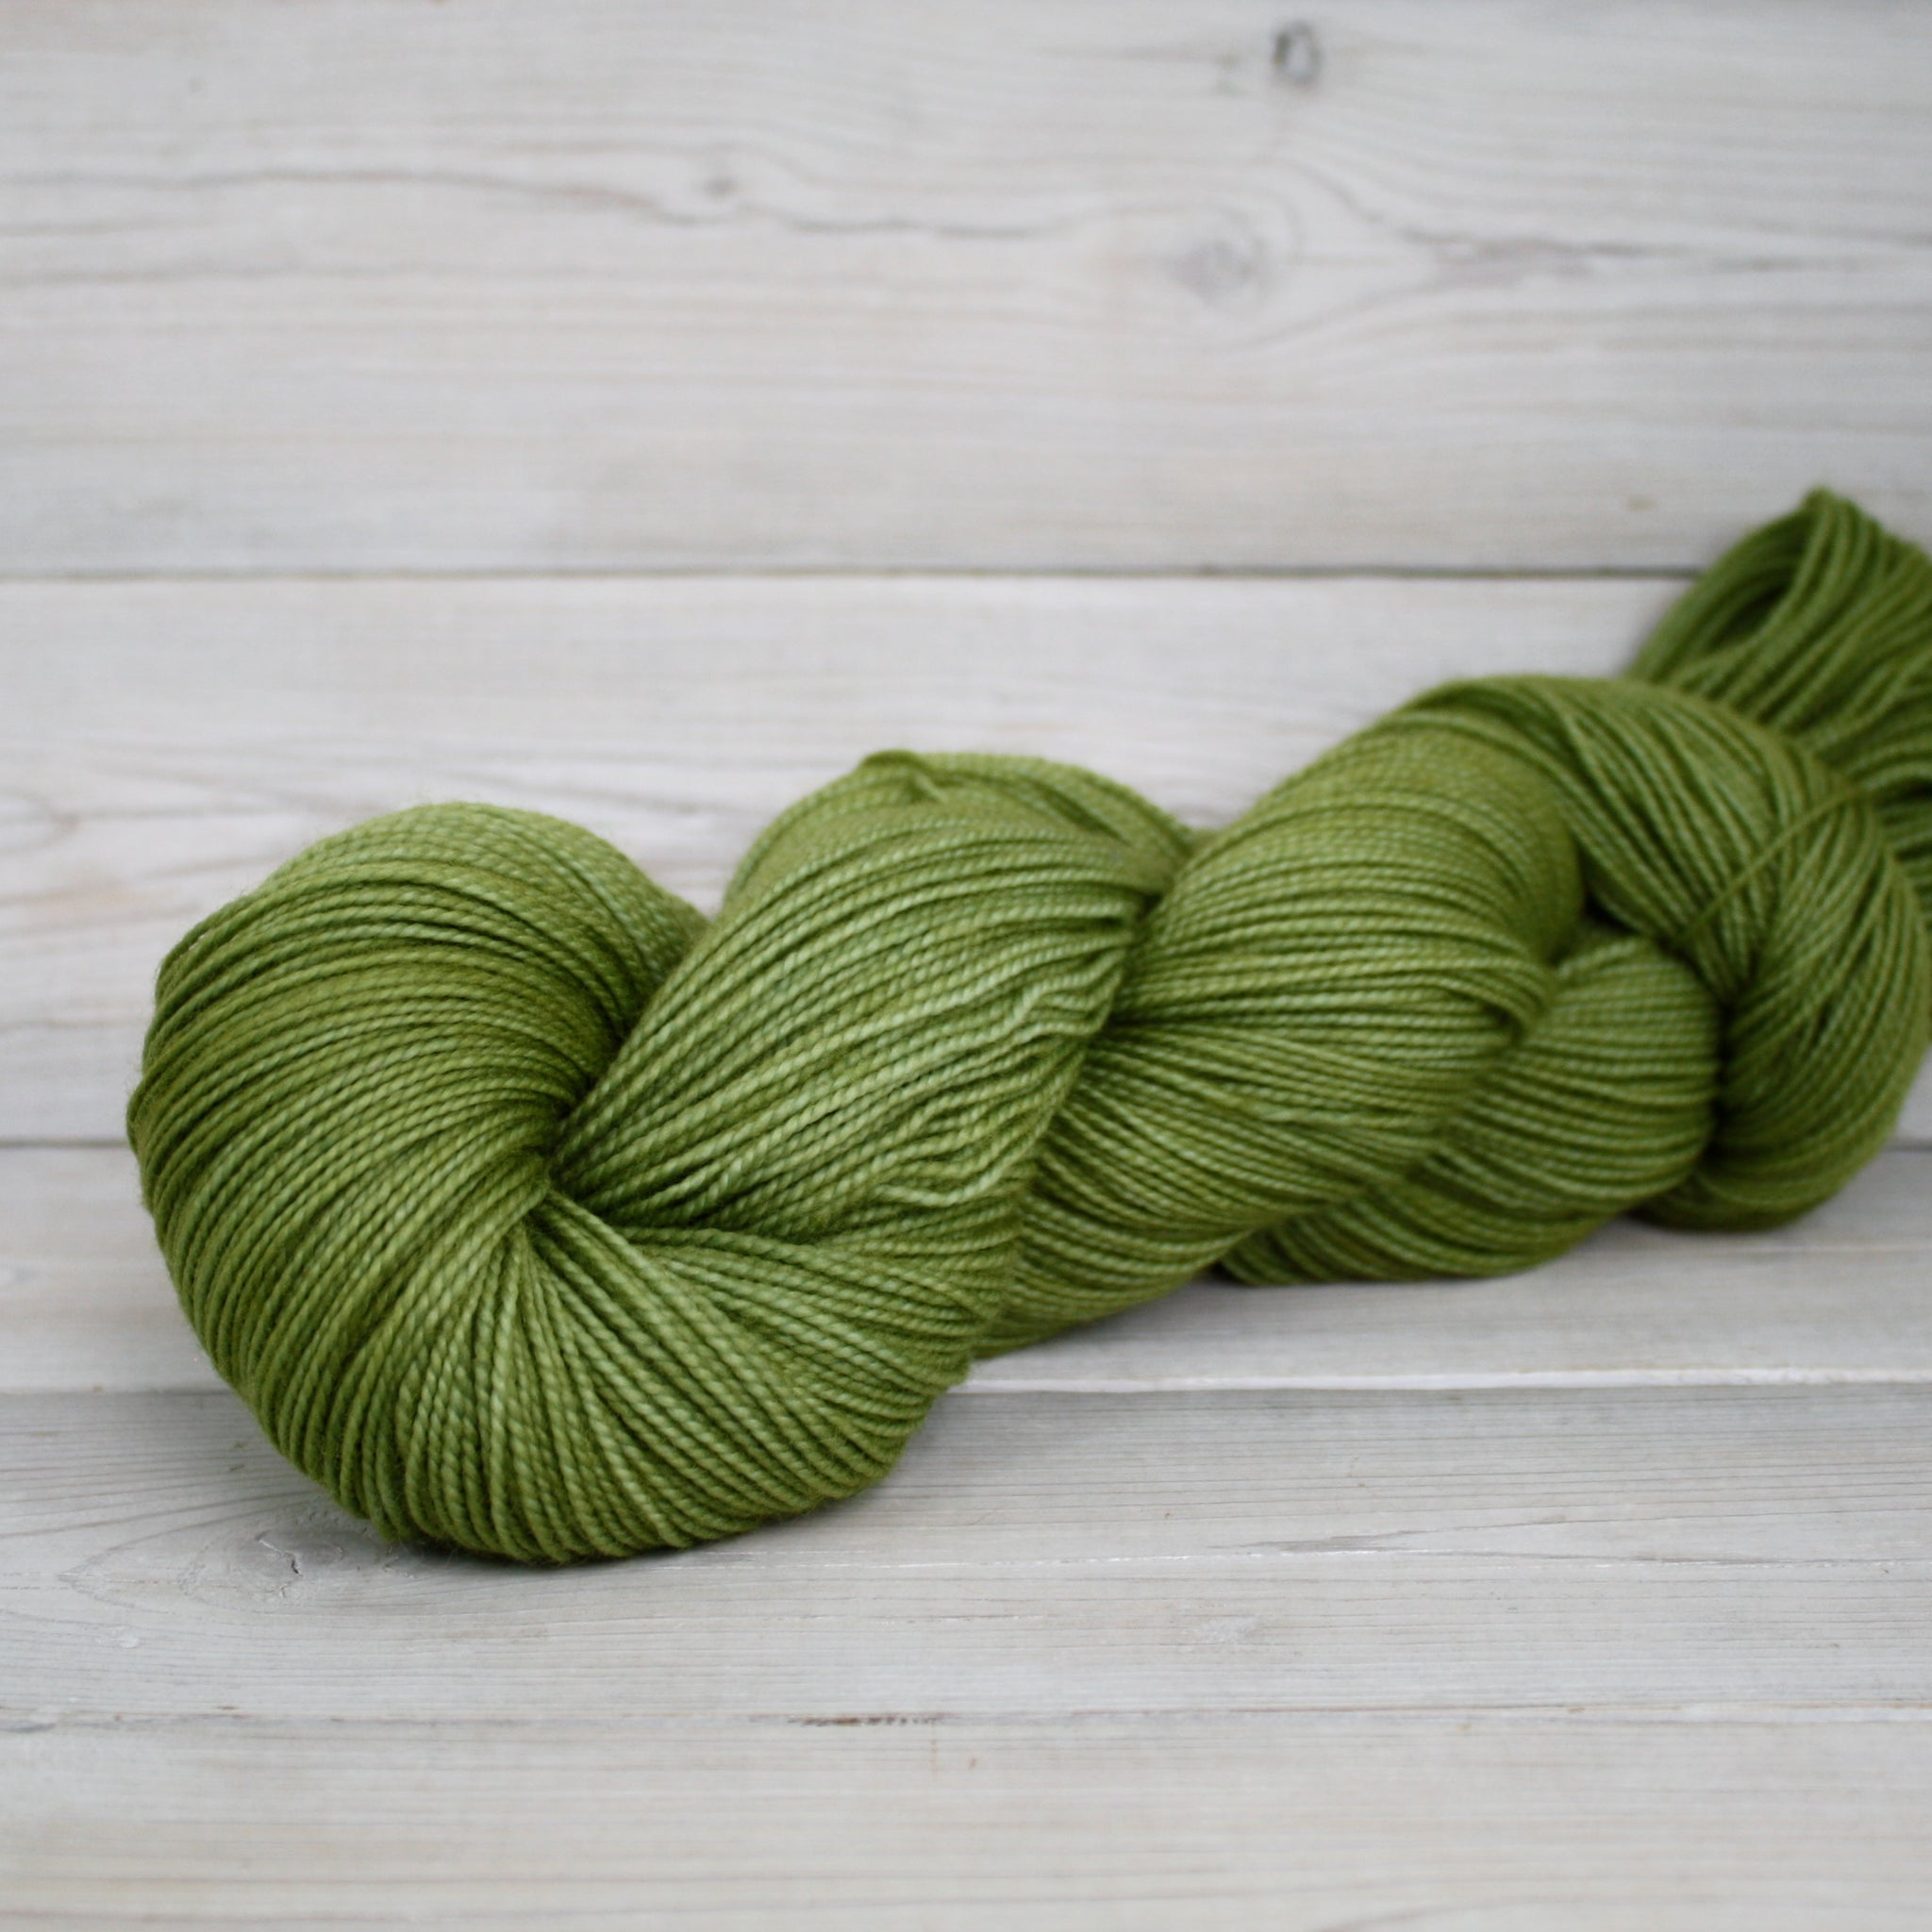 Celeste Yarn | Colorway: Avocado